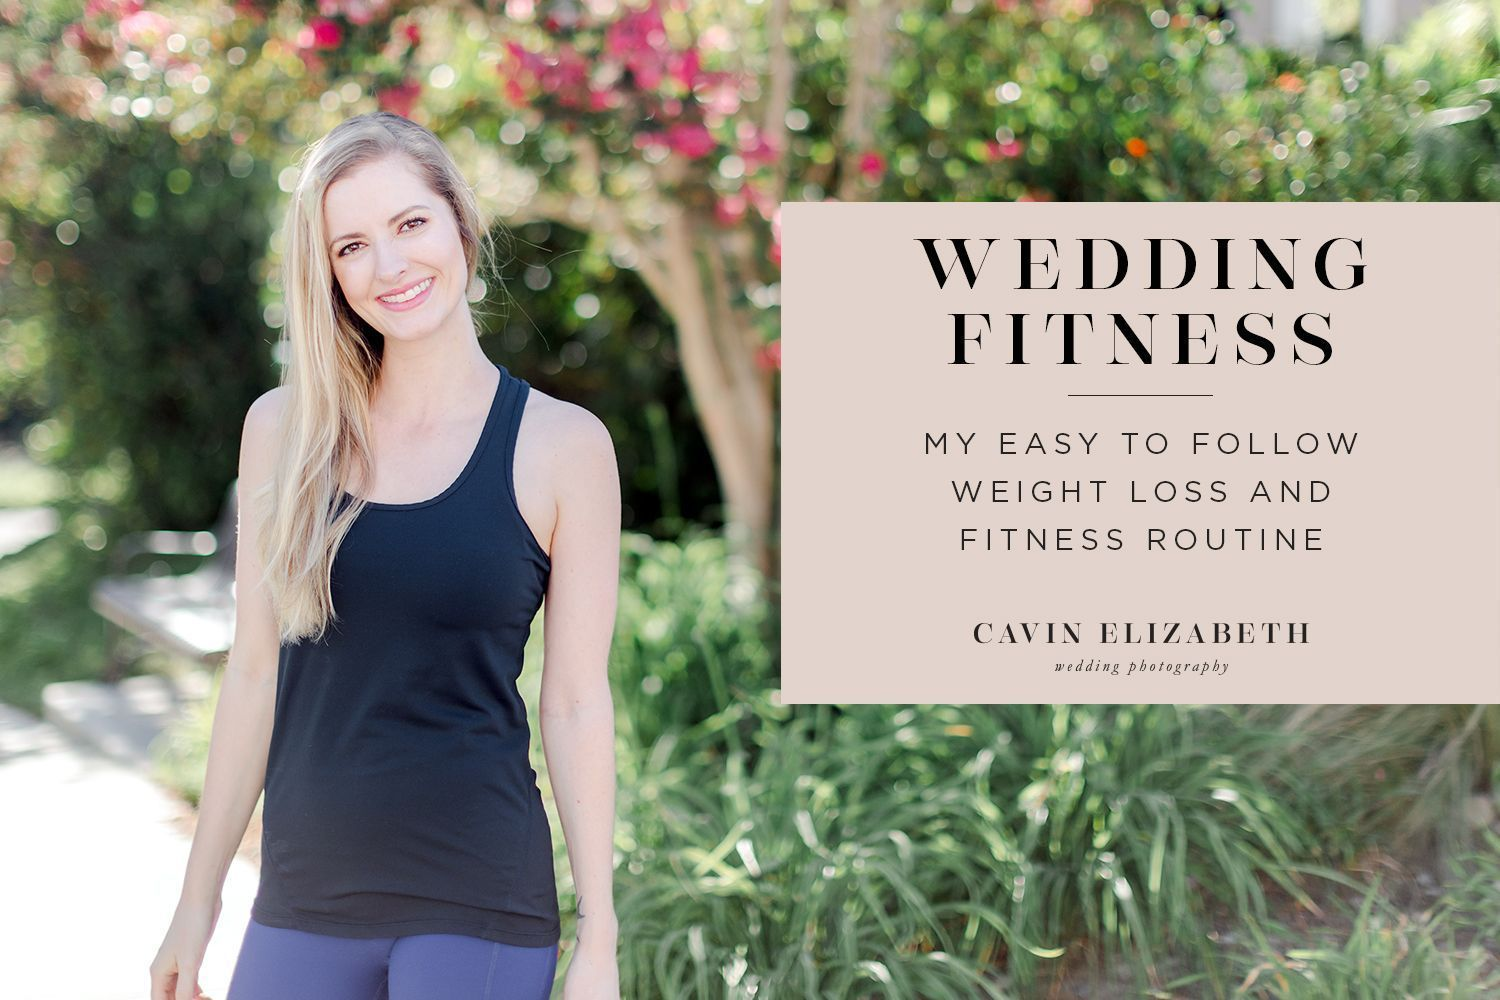 #wedding #amazing #fitness #routine # #inside #thats #learn #shape #diet #your #easy #feel #for #out...